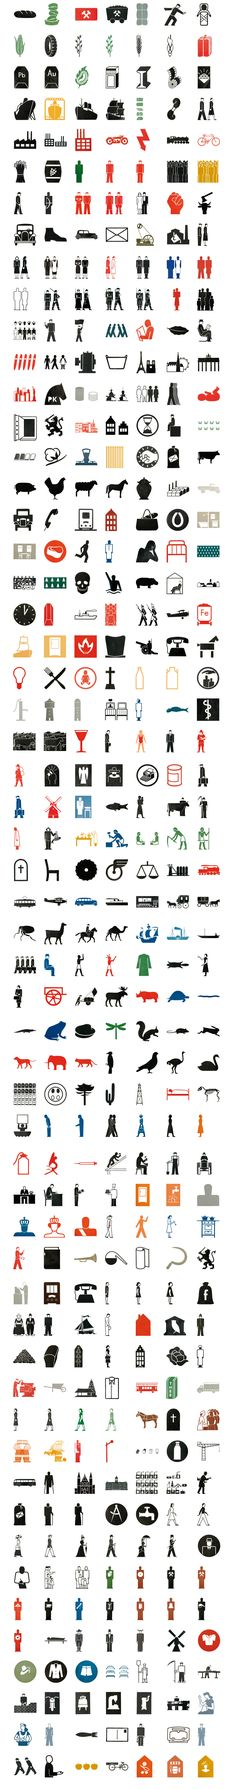 isotype icons by Otto Neurath + Gerd Arntz (1930's to 1960's)